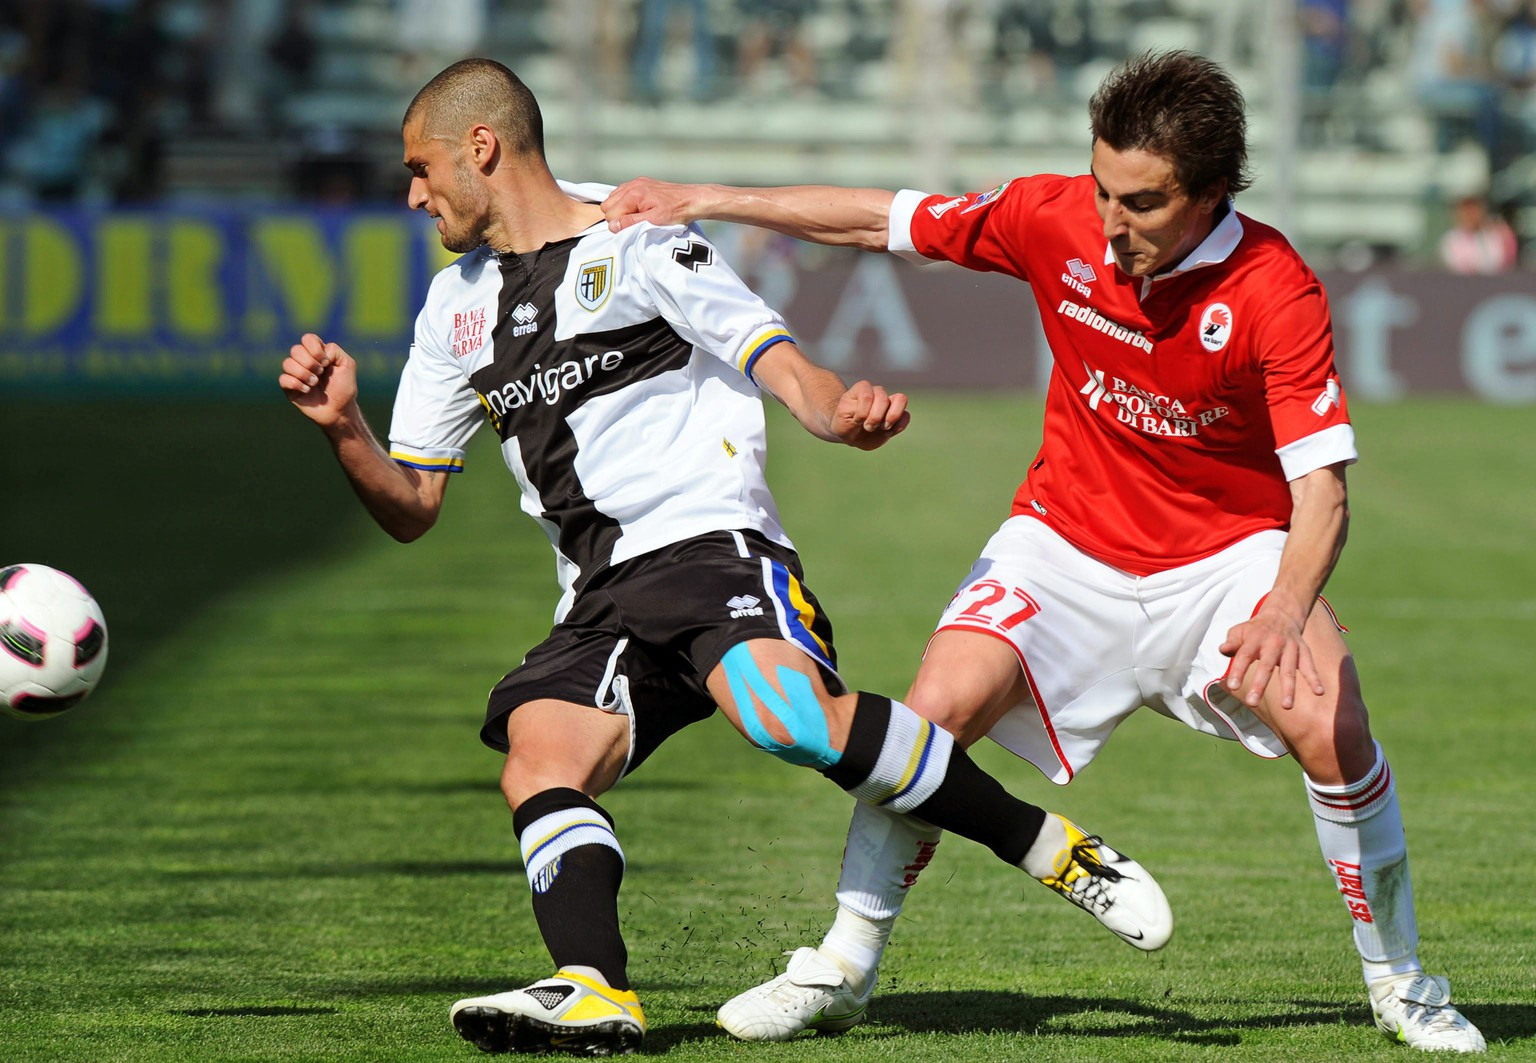 epa02667702 AS Bari midfielder Simone Bentivoglio (R) vies for the ball with FC Parma midfielder Antonio Candreva (L) during their Italian Serie A soccer match at Ennio Tardini stadium in Parma, Italy, 03 April 2011. Bari won 2-1.  EPA/PIER PAOLO FERRERI